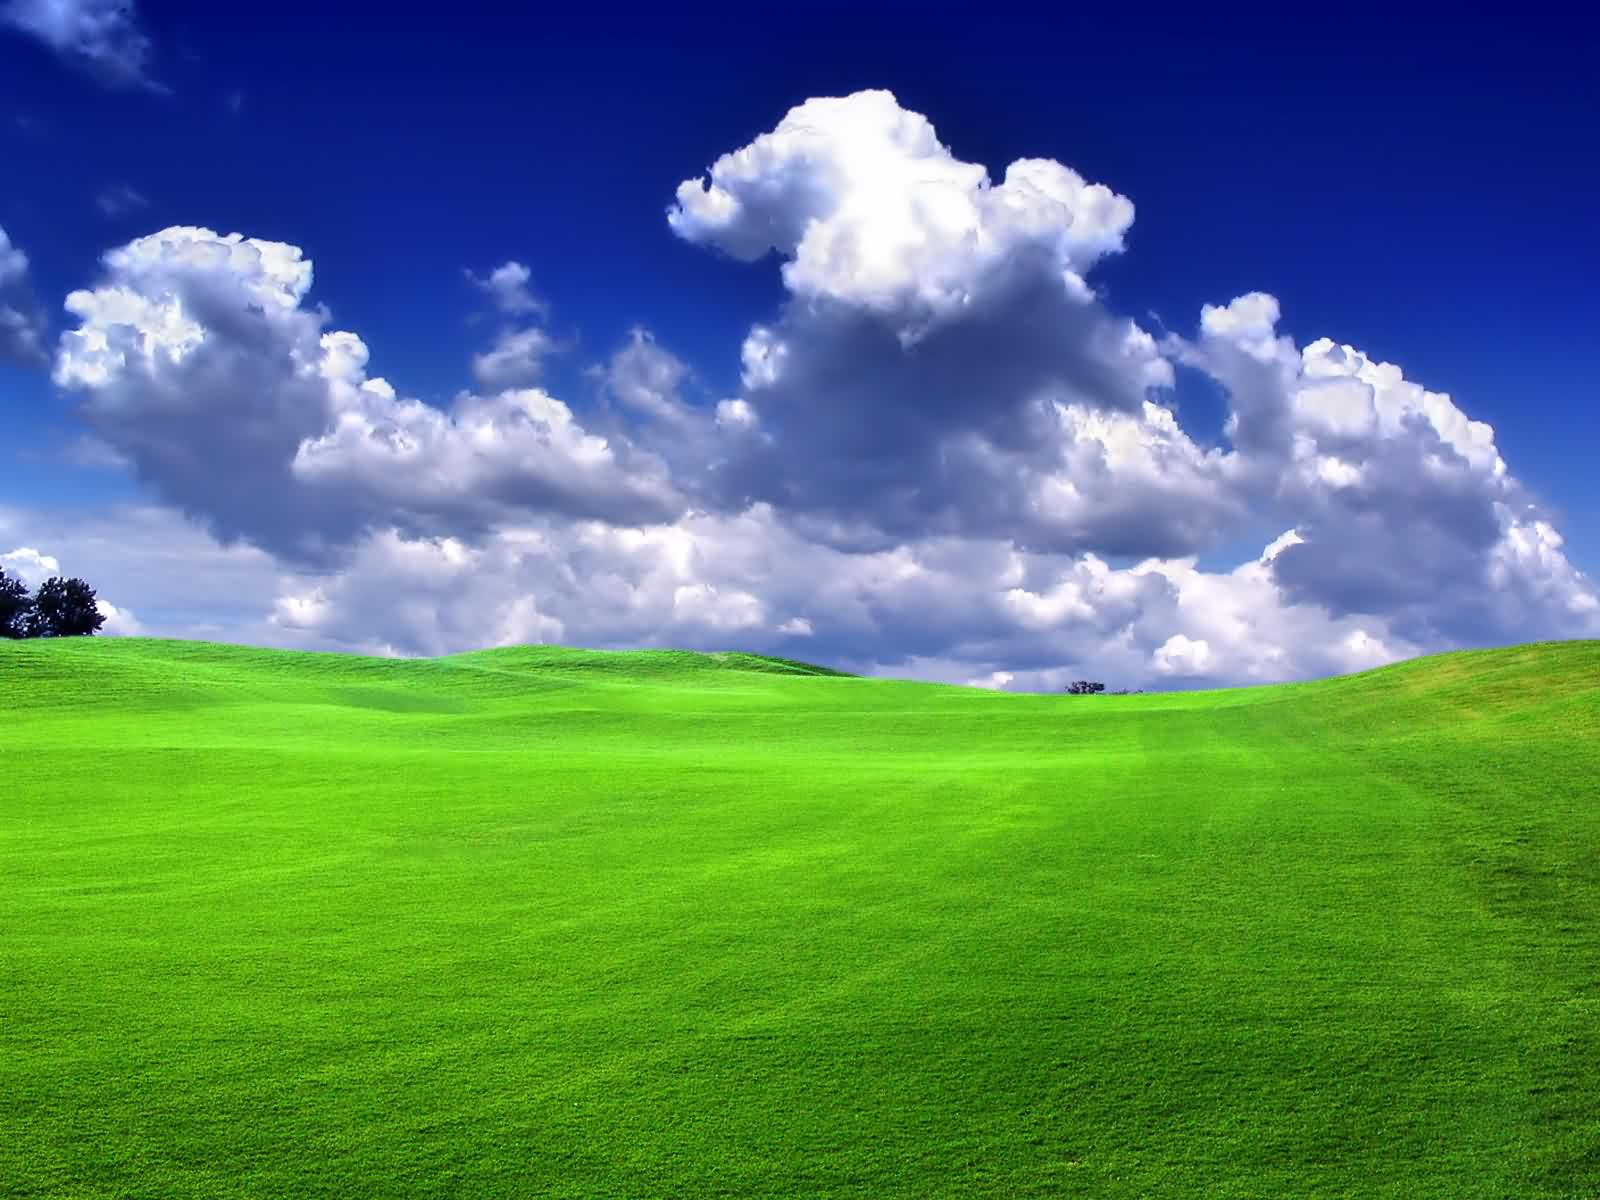 High Definition nature wallpaper